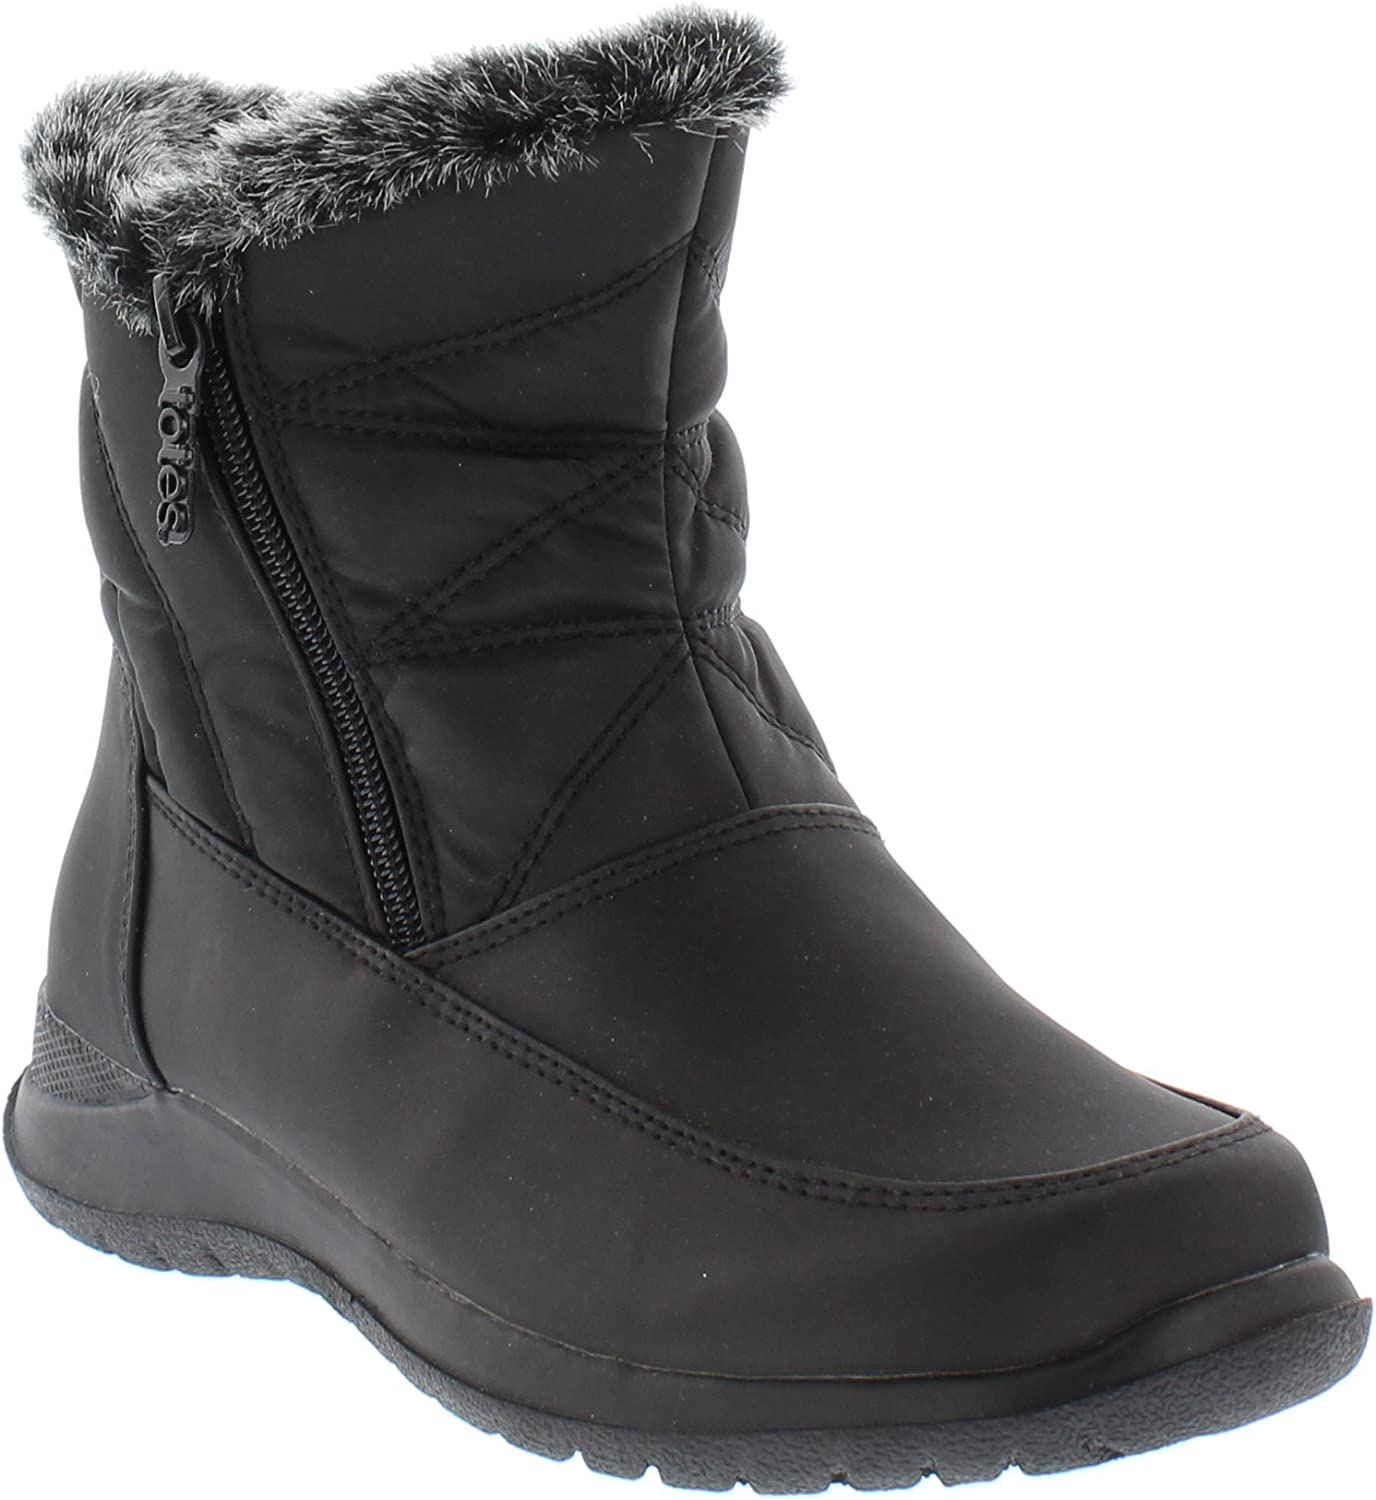 Totes Womens Cold Weather Boots with Dual Side Zippers Dalia Waterproof Insulated - Winter Boots for Comfort - Keeps Feet Warm & Dry - Available in Medium and Wide Width